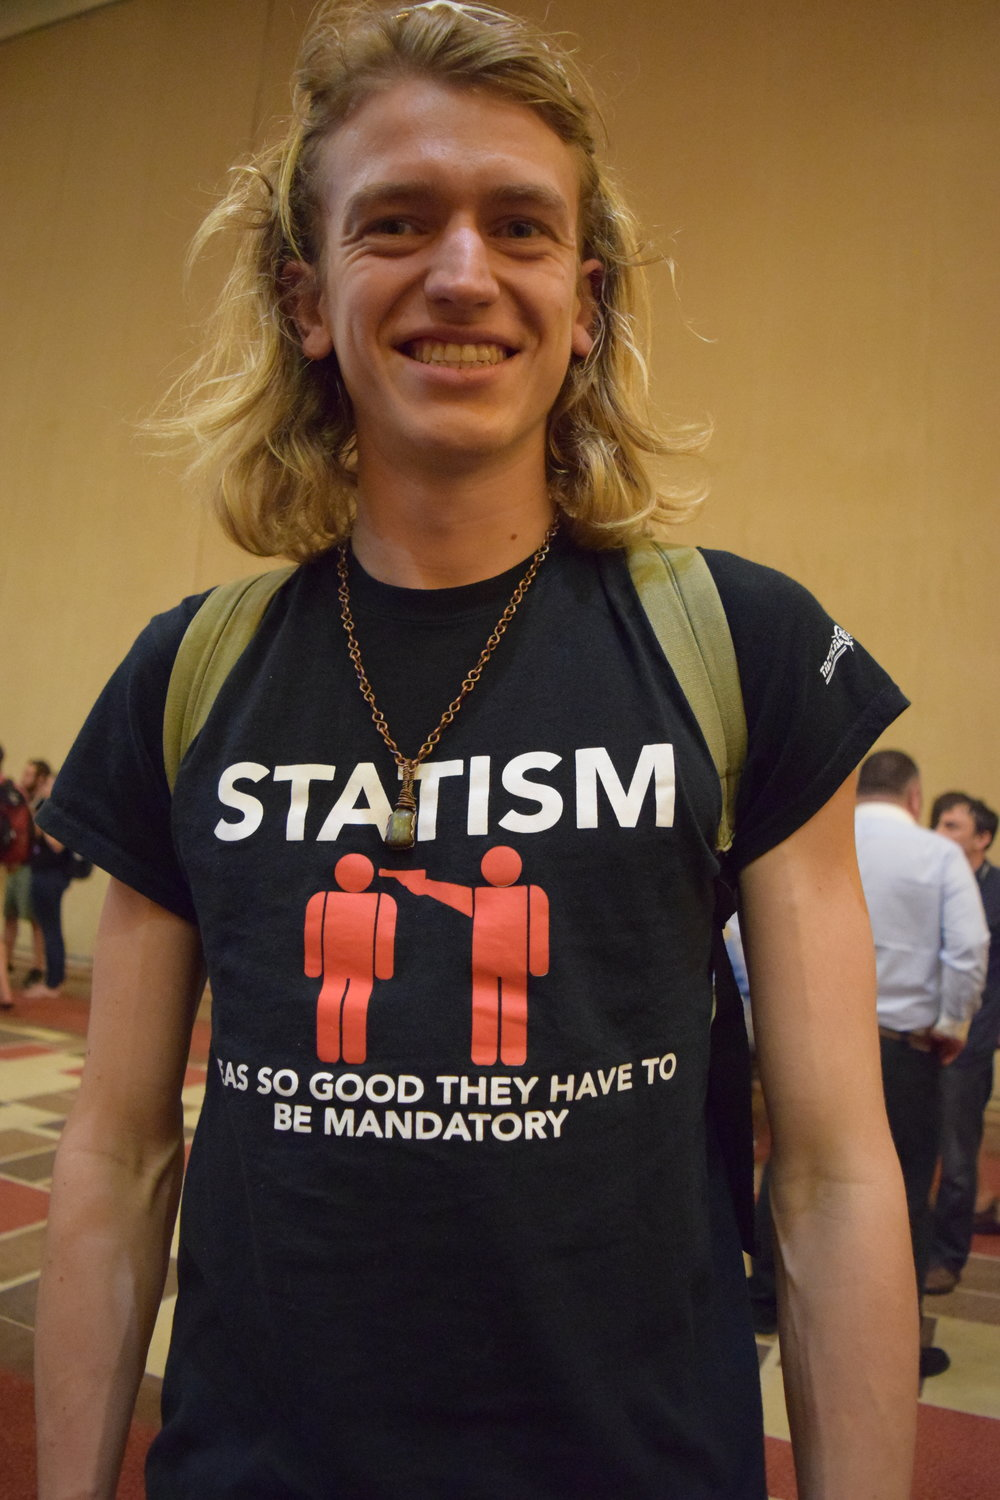 Nathan rocking the statism shirt.  The first word on there that you can't really see is 'Ideas'.